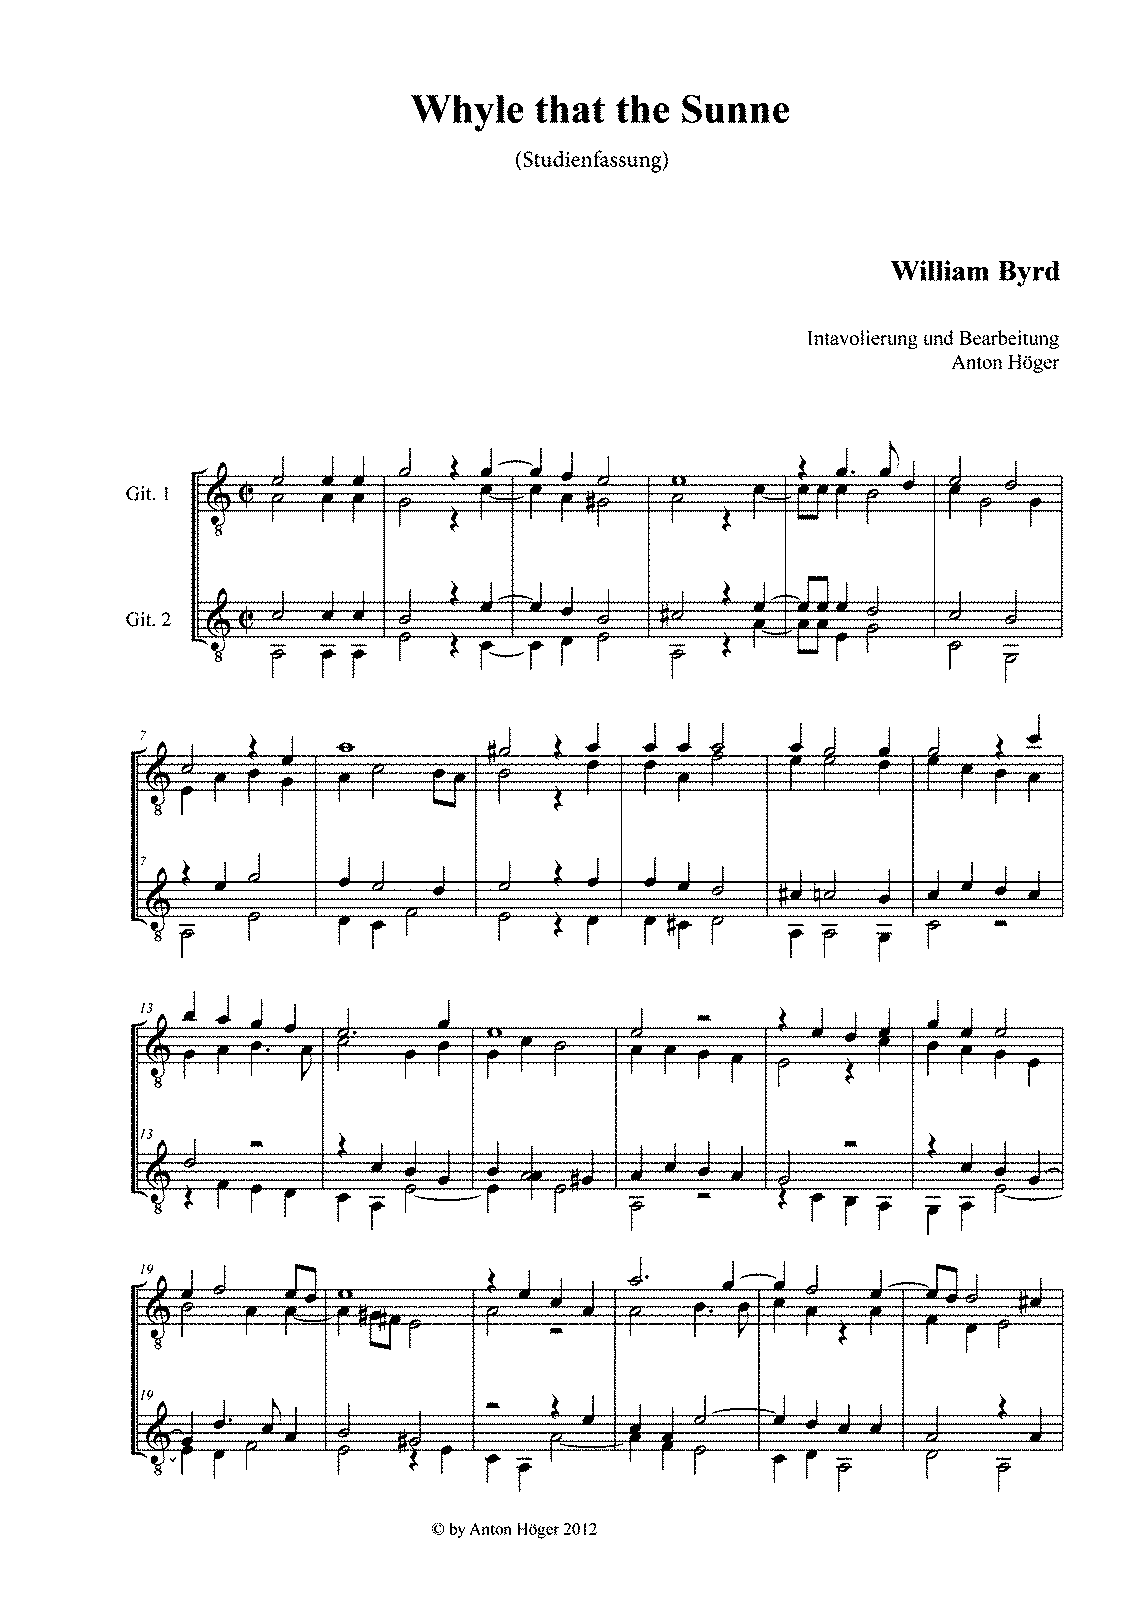 PMLP550045-Byrd, William - Whyle that the Sunne (Studienfassung).pdf